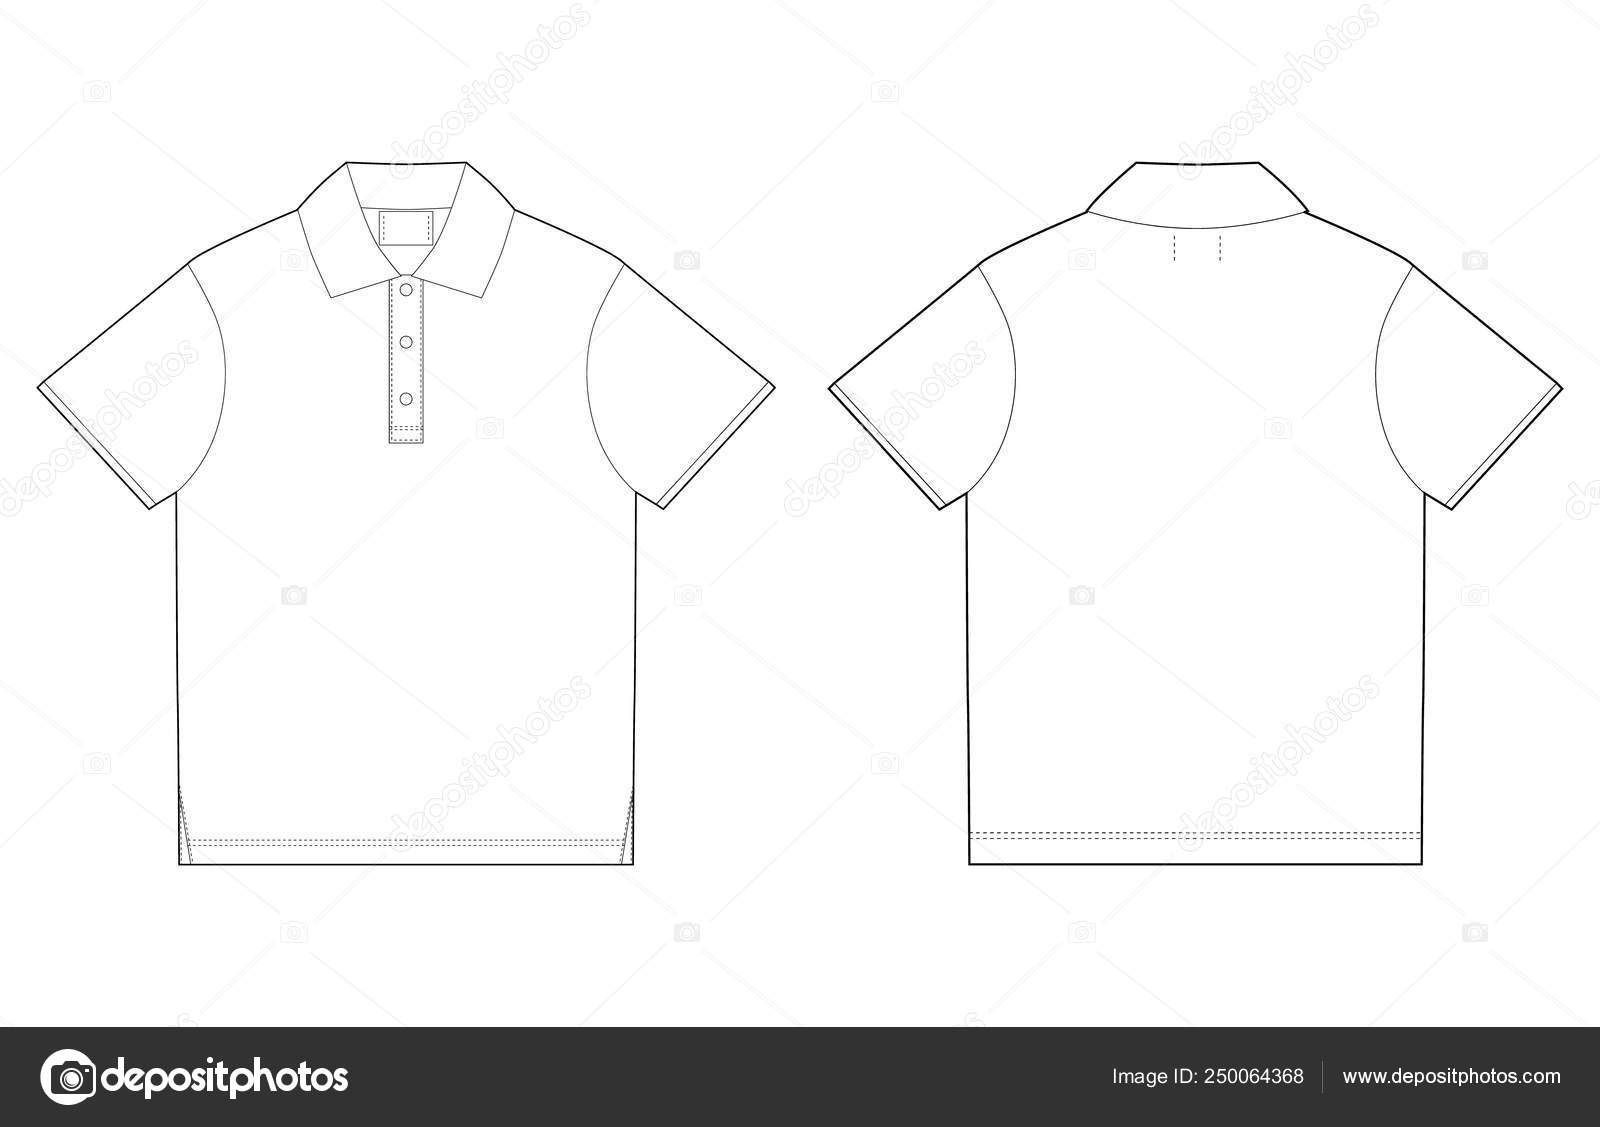 006 Awful Tee Shirt Design Template Highest Clarity  Templates T Illustrator Free Download Polo PsdFull